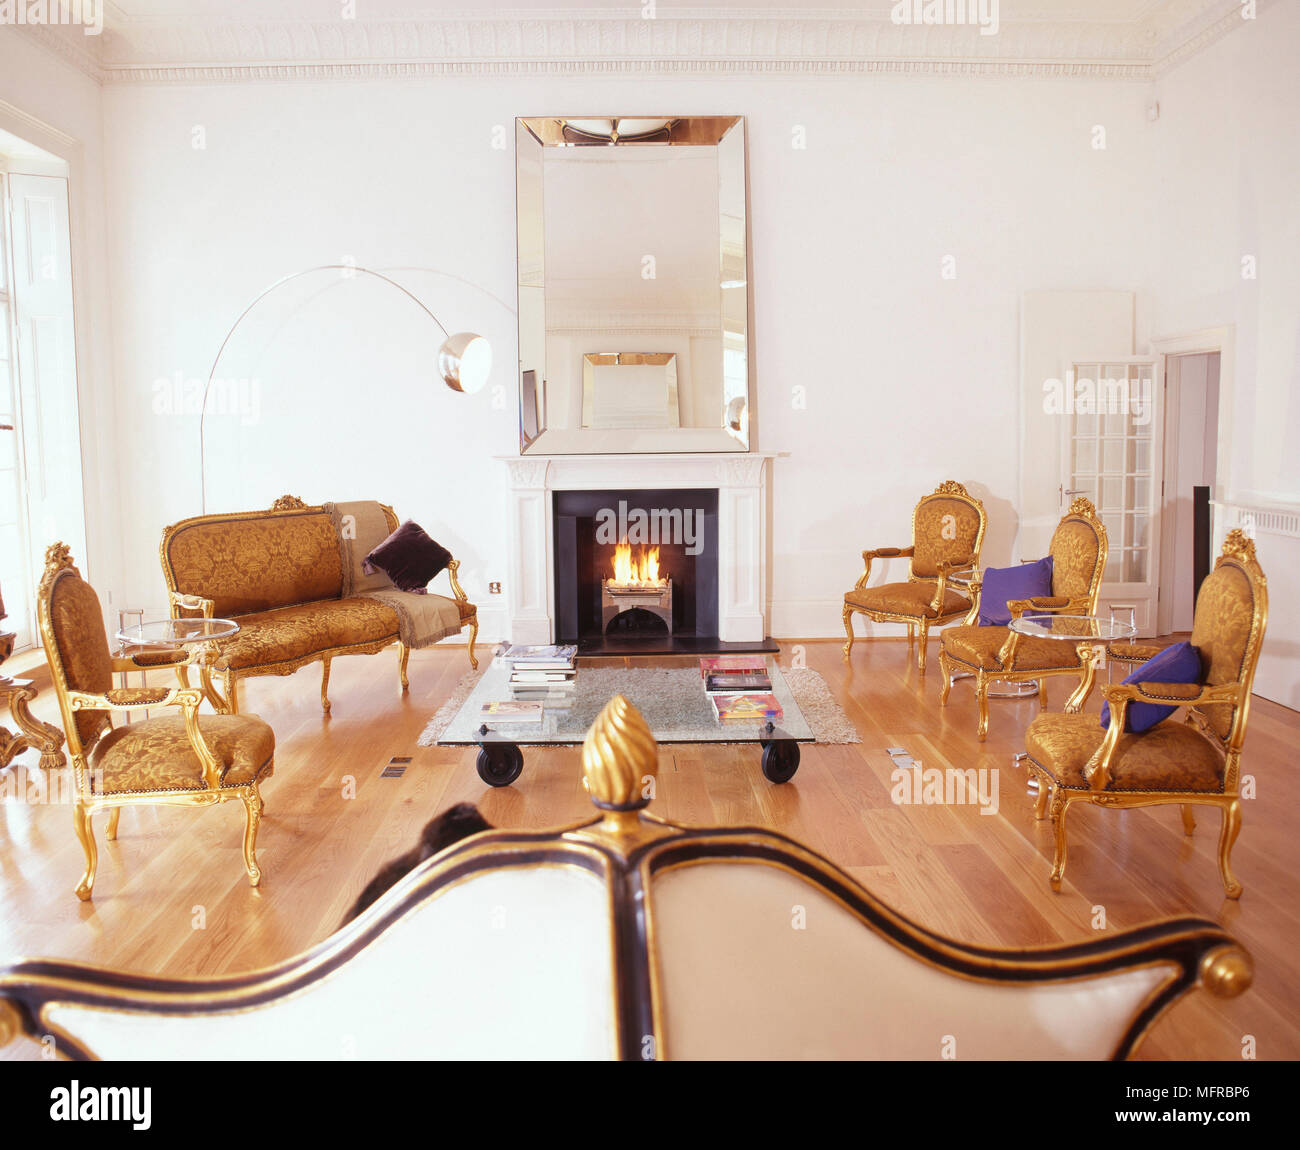 Sitting room with gilded antique chairs, chrome and glass tables, wood  floor, and a large, frameless mirror over a lit fireplace. - Sitting Room With Gilded Antique Chairs, Chrome And Glass Tables